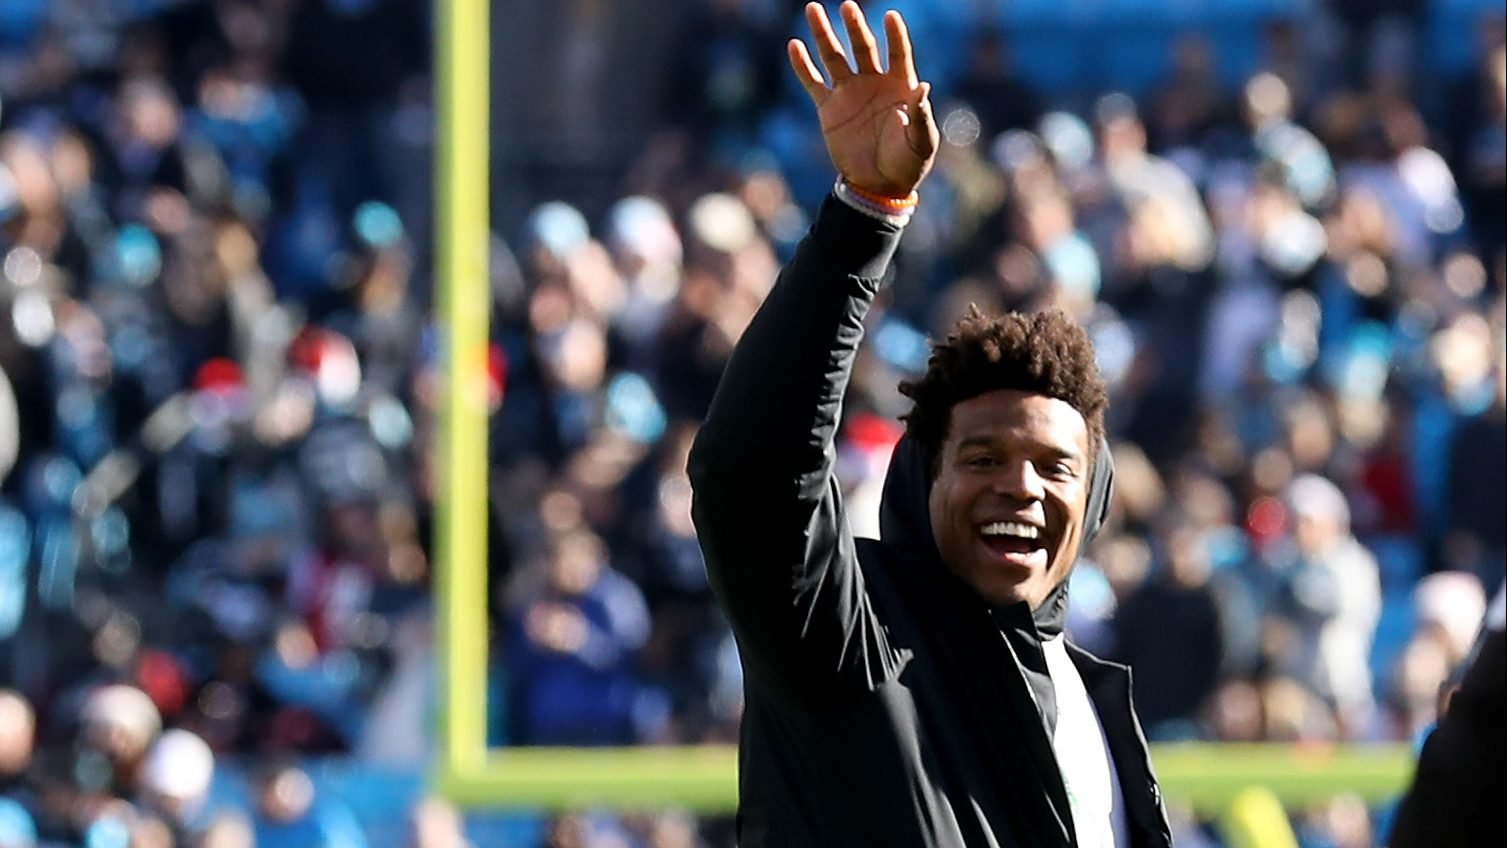 Patriots Signaling Cam Newton as QB1 After Big Instagram Welcome Video